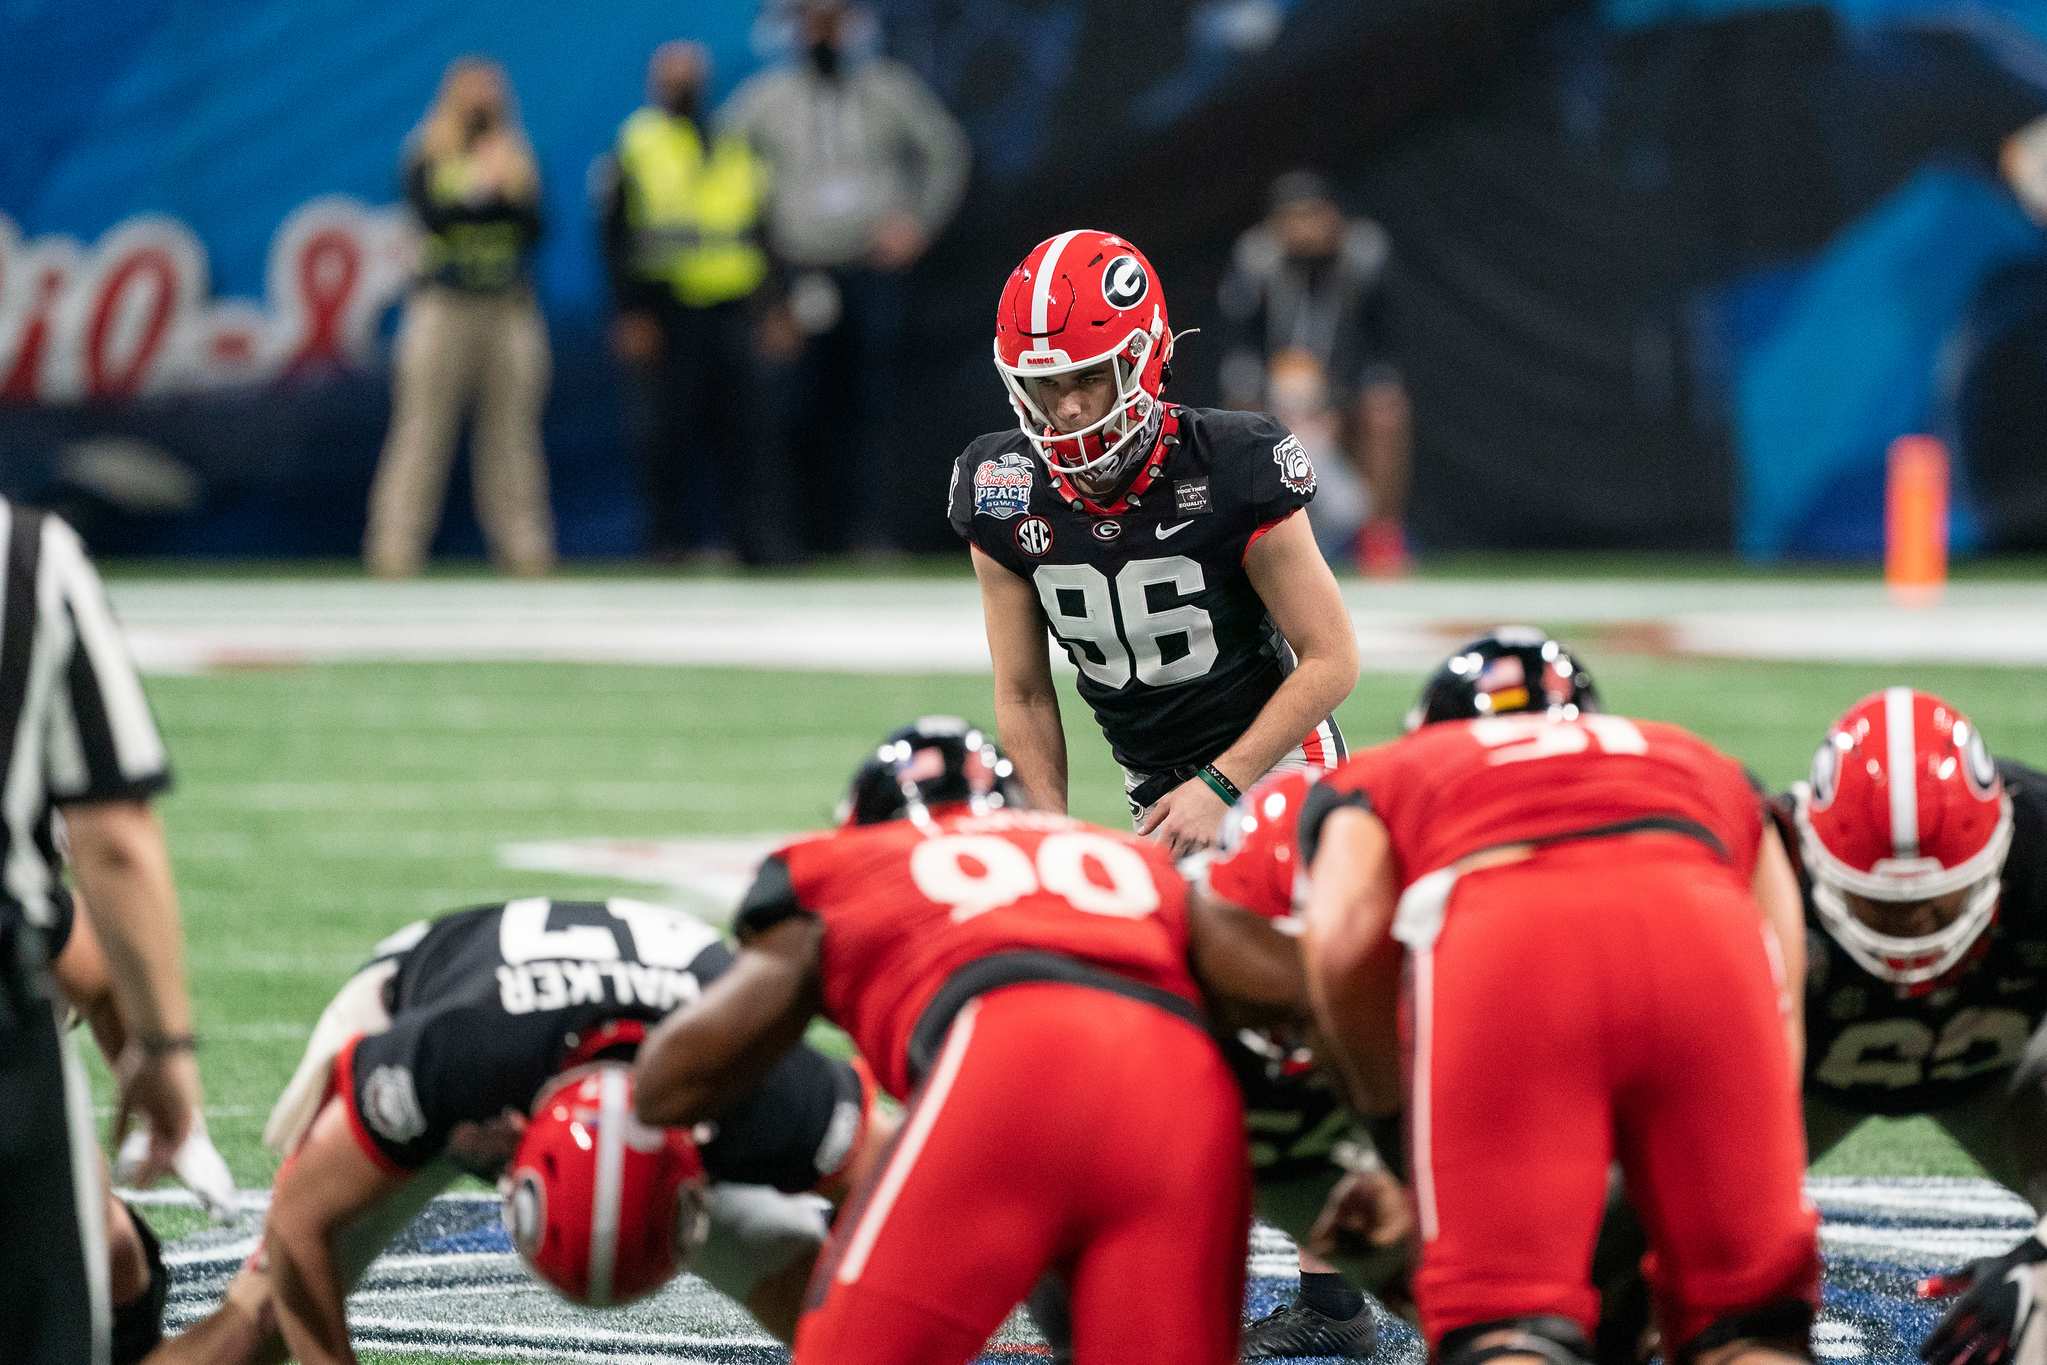 Georgia Bulldogs kicker Jack Podlesny (96) lines up prior to kicking a game-winning field goal during the Chick-fil-A Peach Bowl NCAA football game against the Cincinnati Bearcats, Jan. 1, 2021, in Atlanta. Georgia won 24-21. (Paul Abell via Abell Images for the Chick-fil-A Peach Bowl)